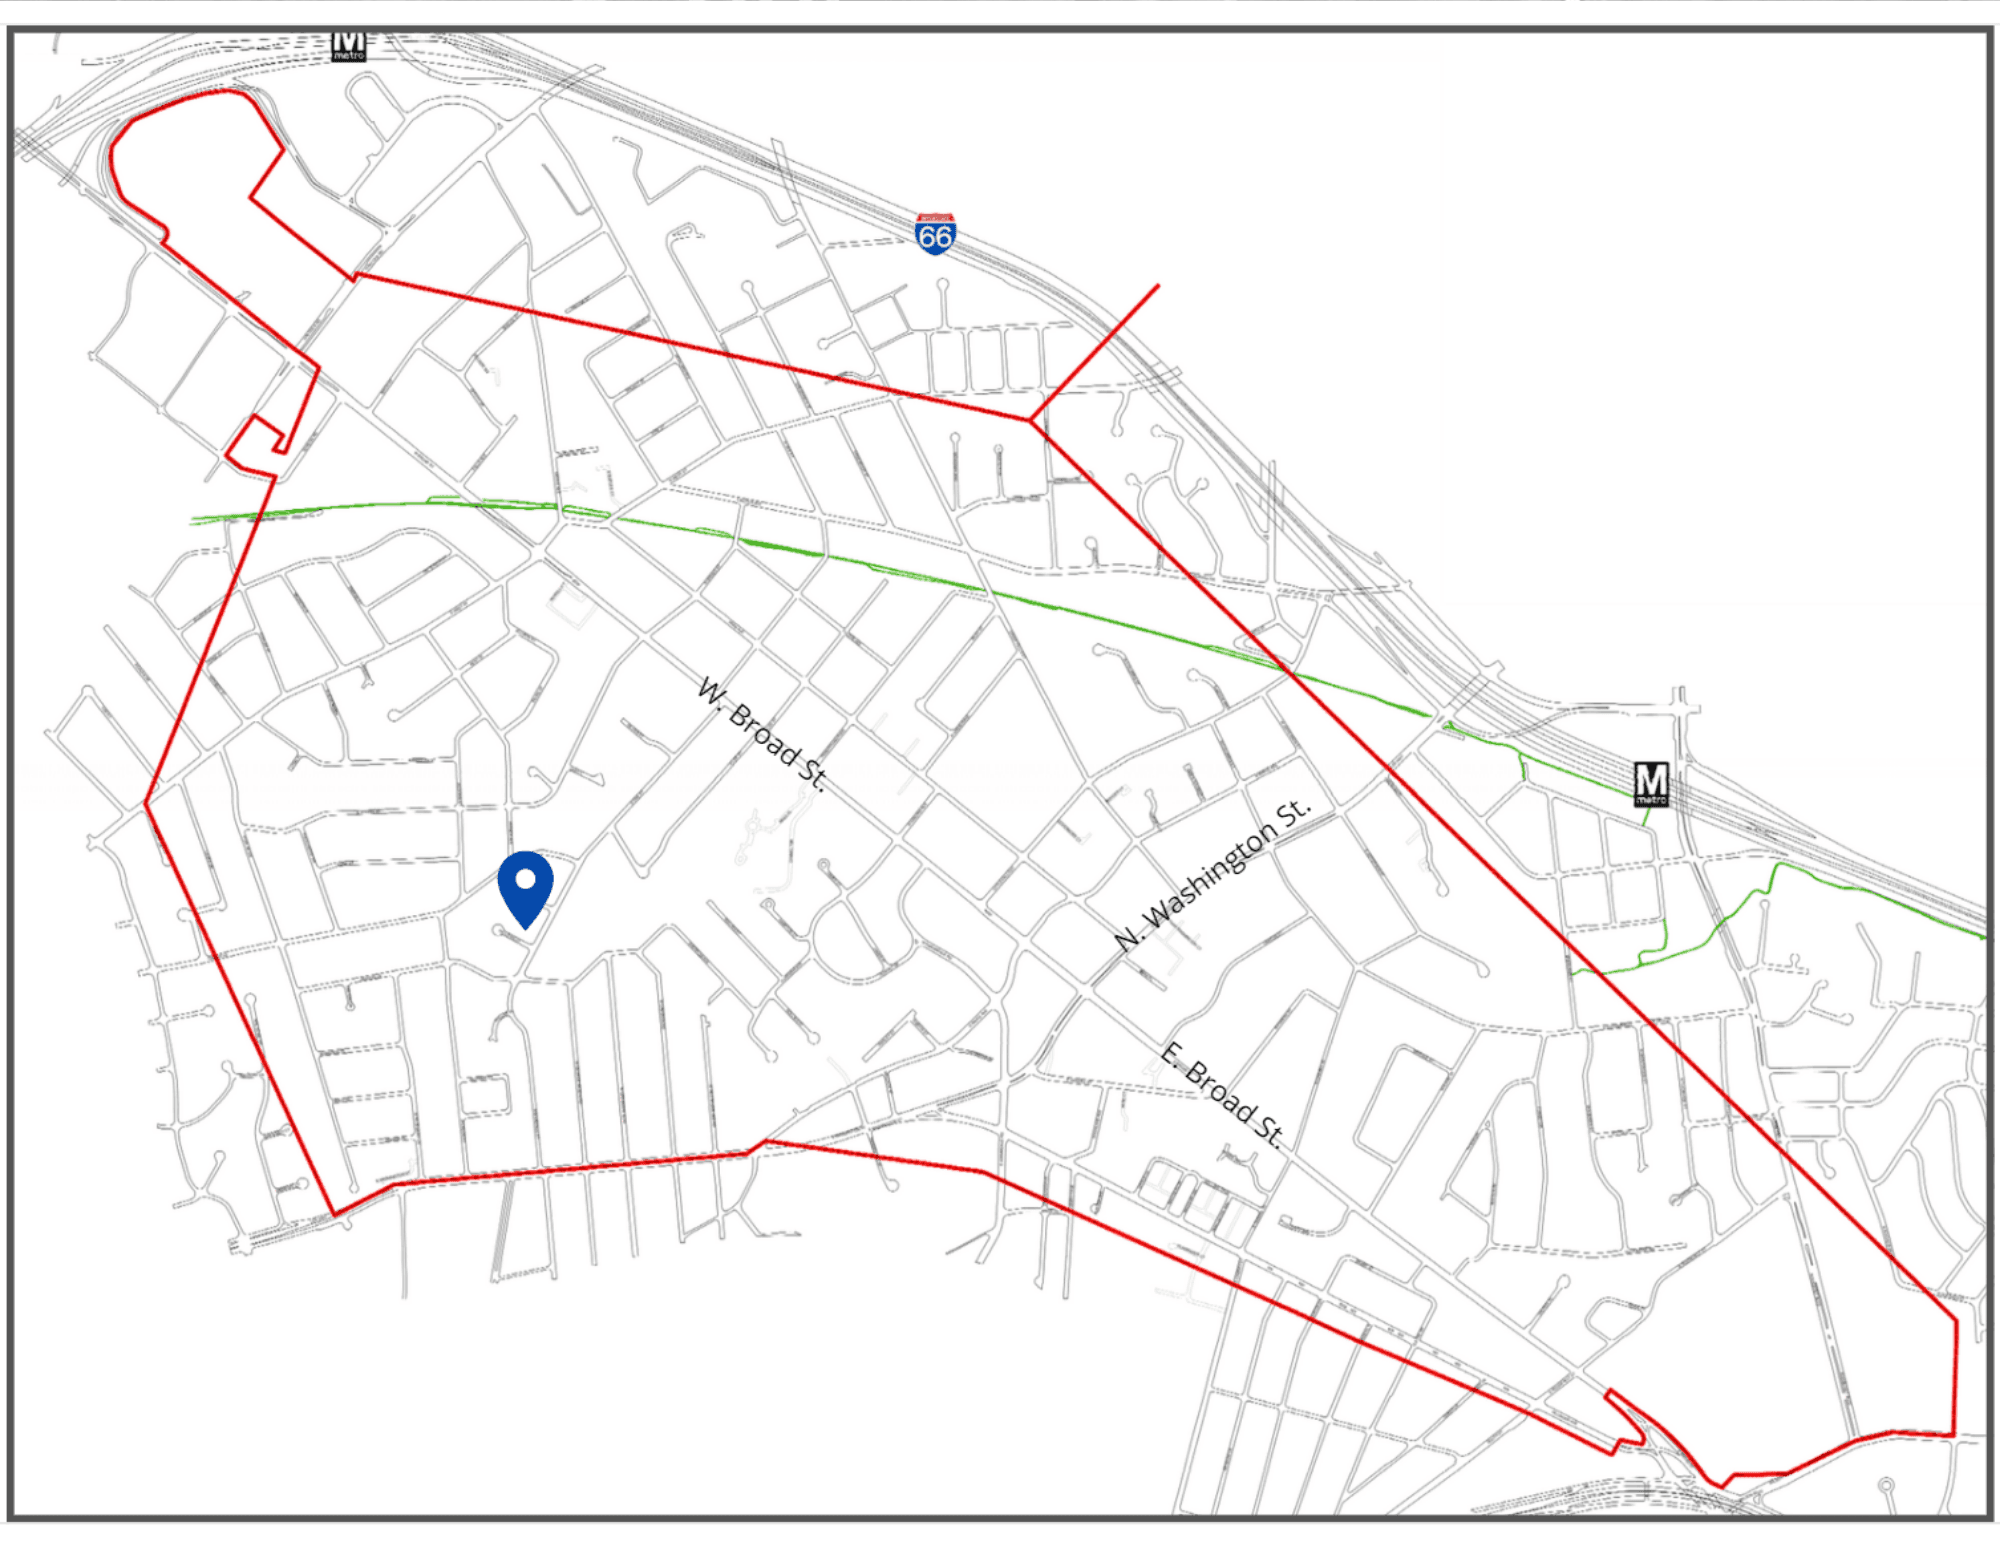 Graphic of the City boundaries and the Fellows Property pin marked.